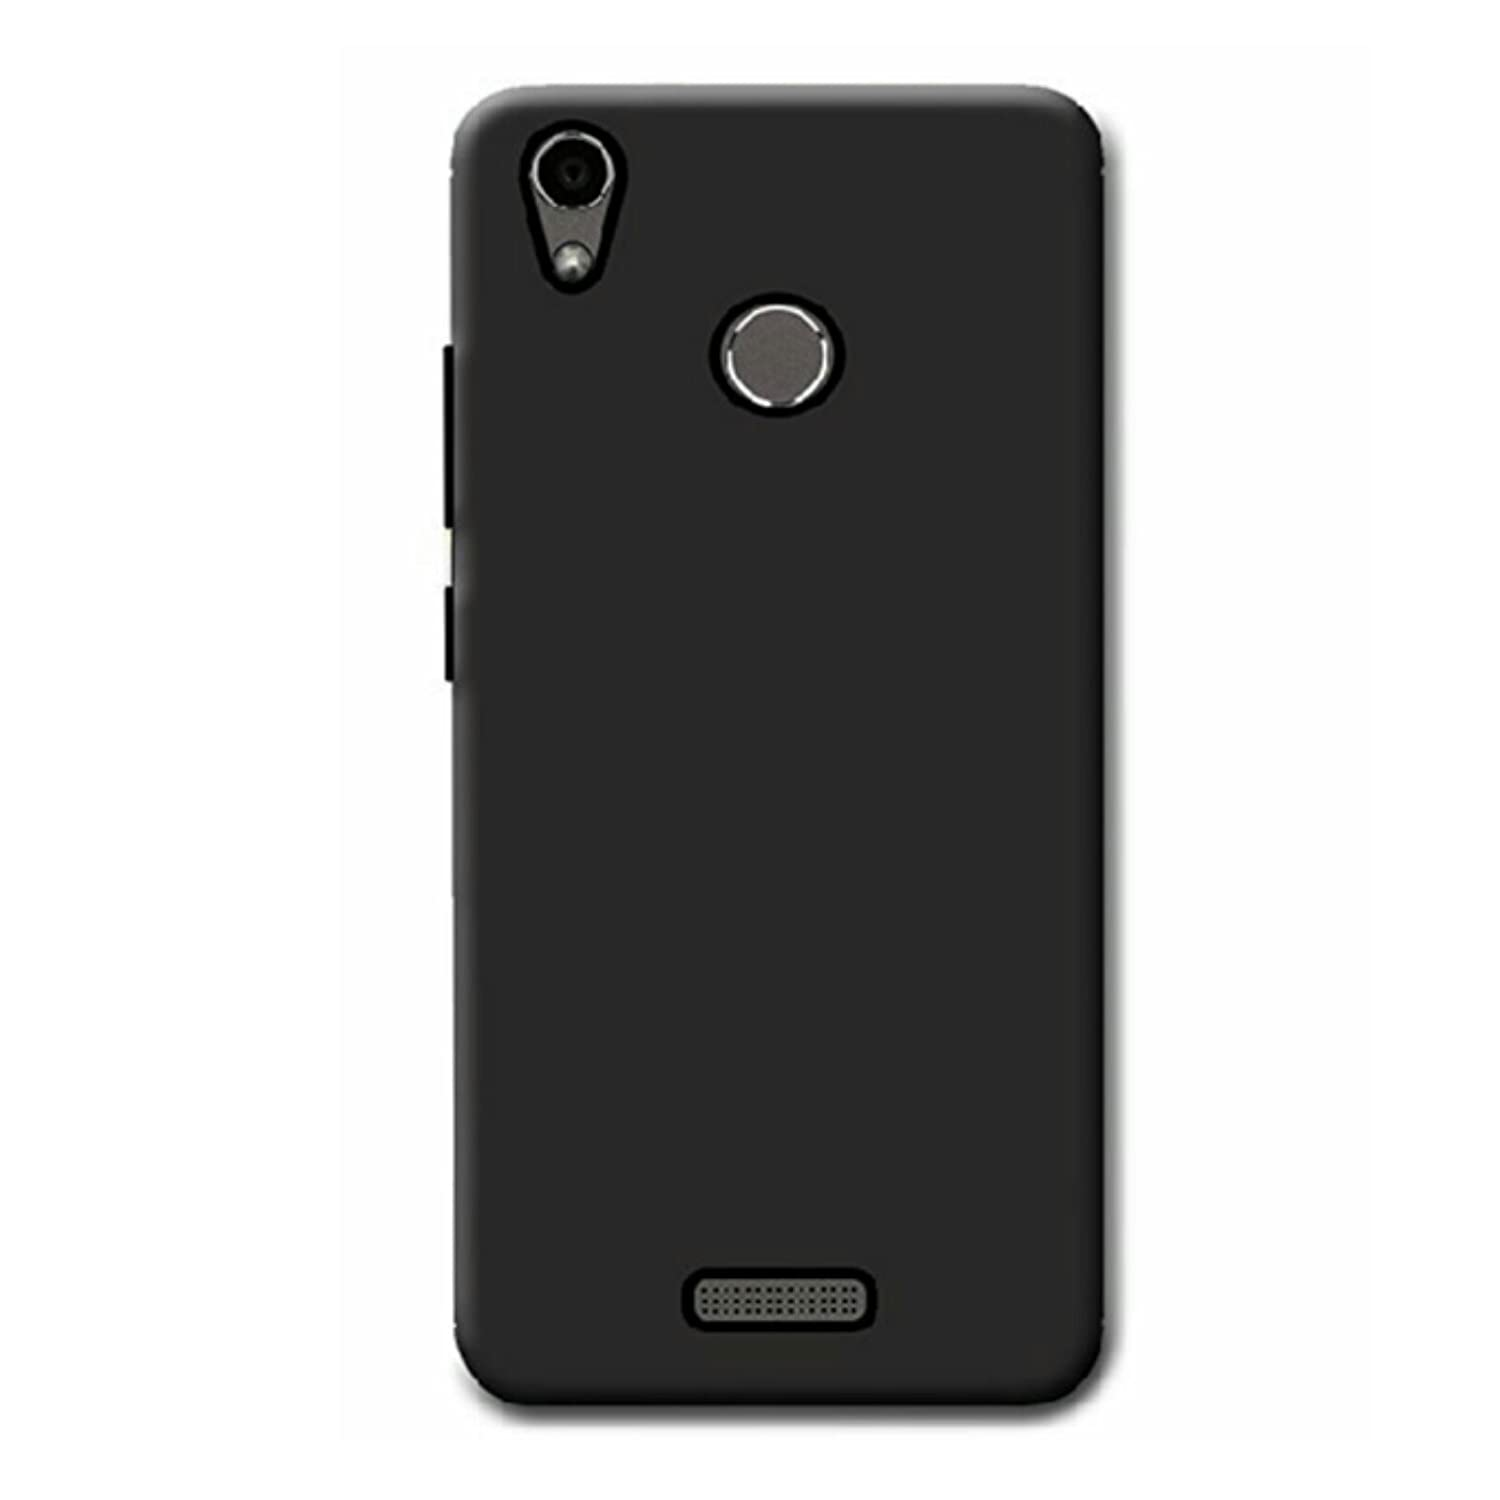 NIK TECH ONLINE Black Waterproof Soft Silicon Back Cover for Infocus Turbo 5